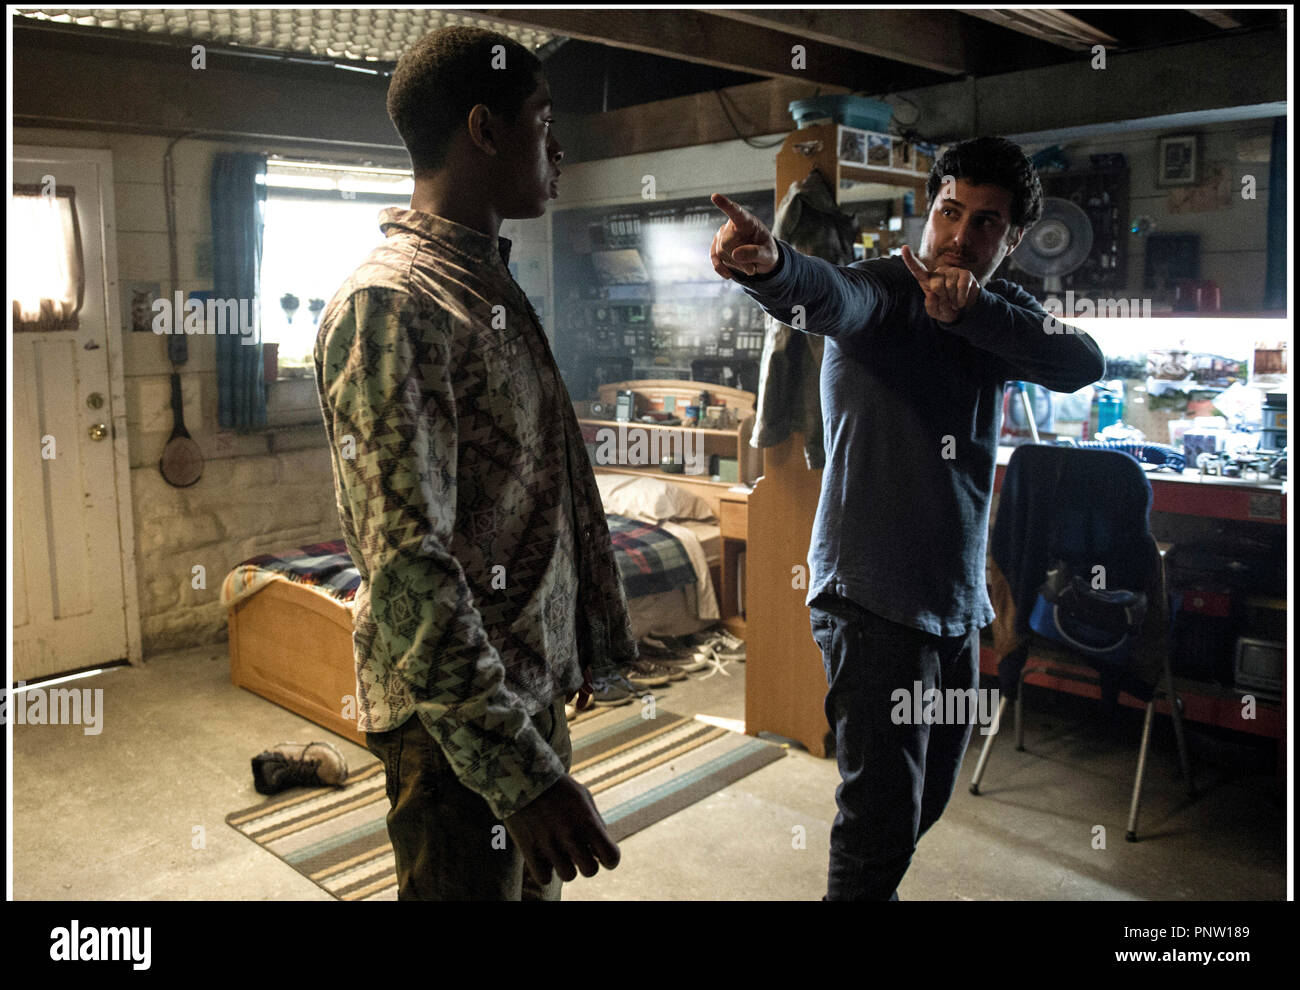 Prod DB © Lionsgate - Saban Brands -Saban Entertainment / DR POWER RANGERS de Dean Israelite 2017 USA avec RJ Cyler et Dean Israelite sur le tournage Stock Photo